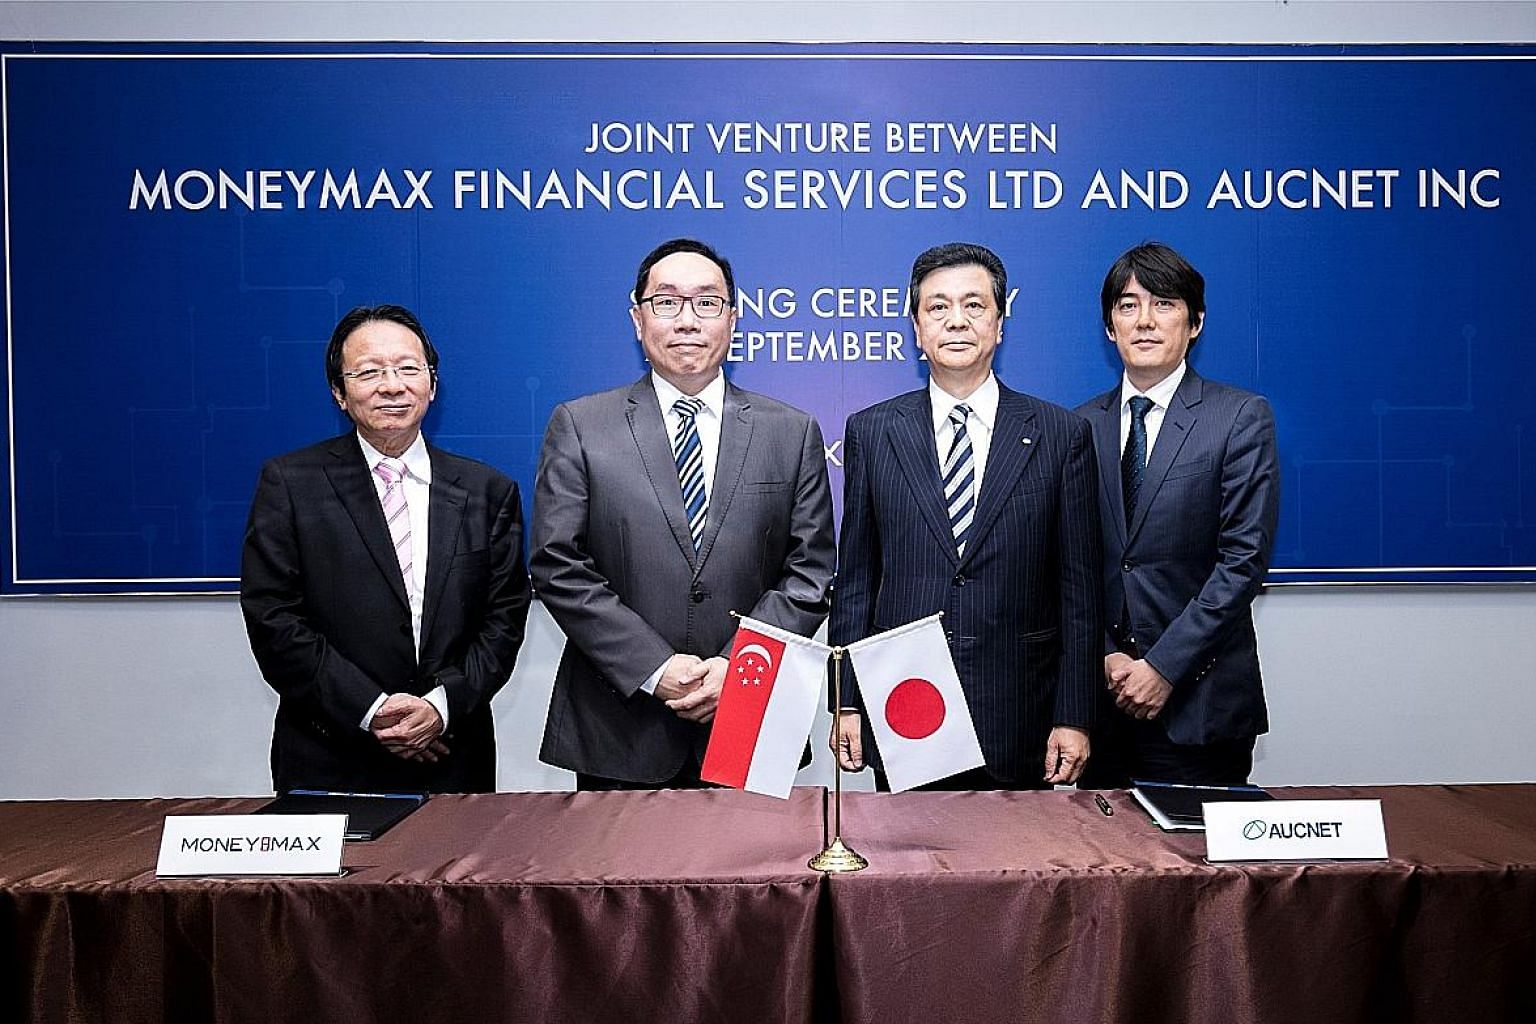 At the signing ceremony are (from left) International Enterprise Singapore senior adviser Chua Taik Him,MoneyMax chief executive Lim Yong Guan, Aucnet president Kiyotaka Fujisaki, and Mr Takashi Nakagawa, deputy managing director at Japan External Tr